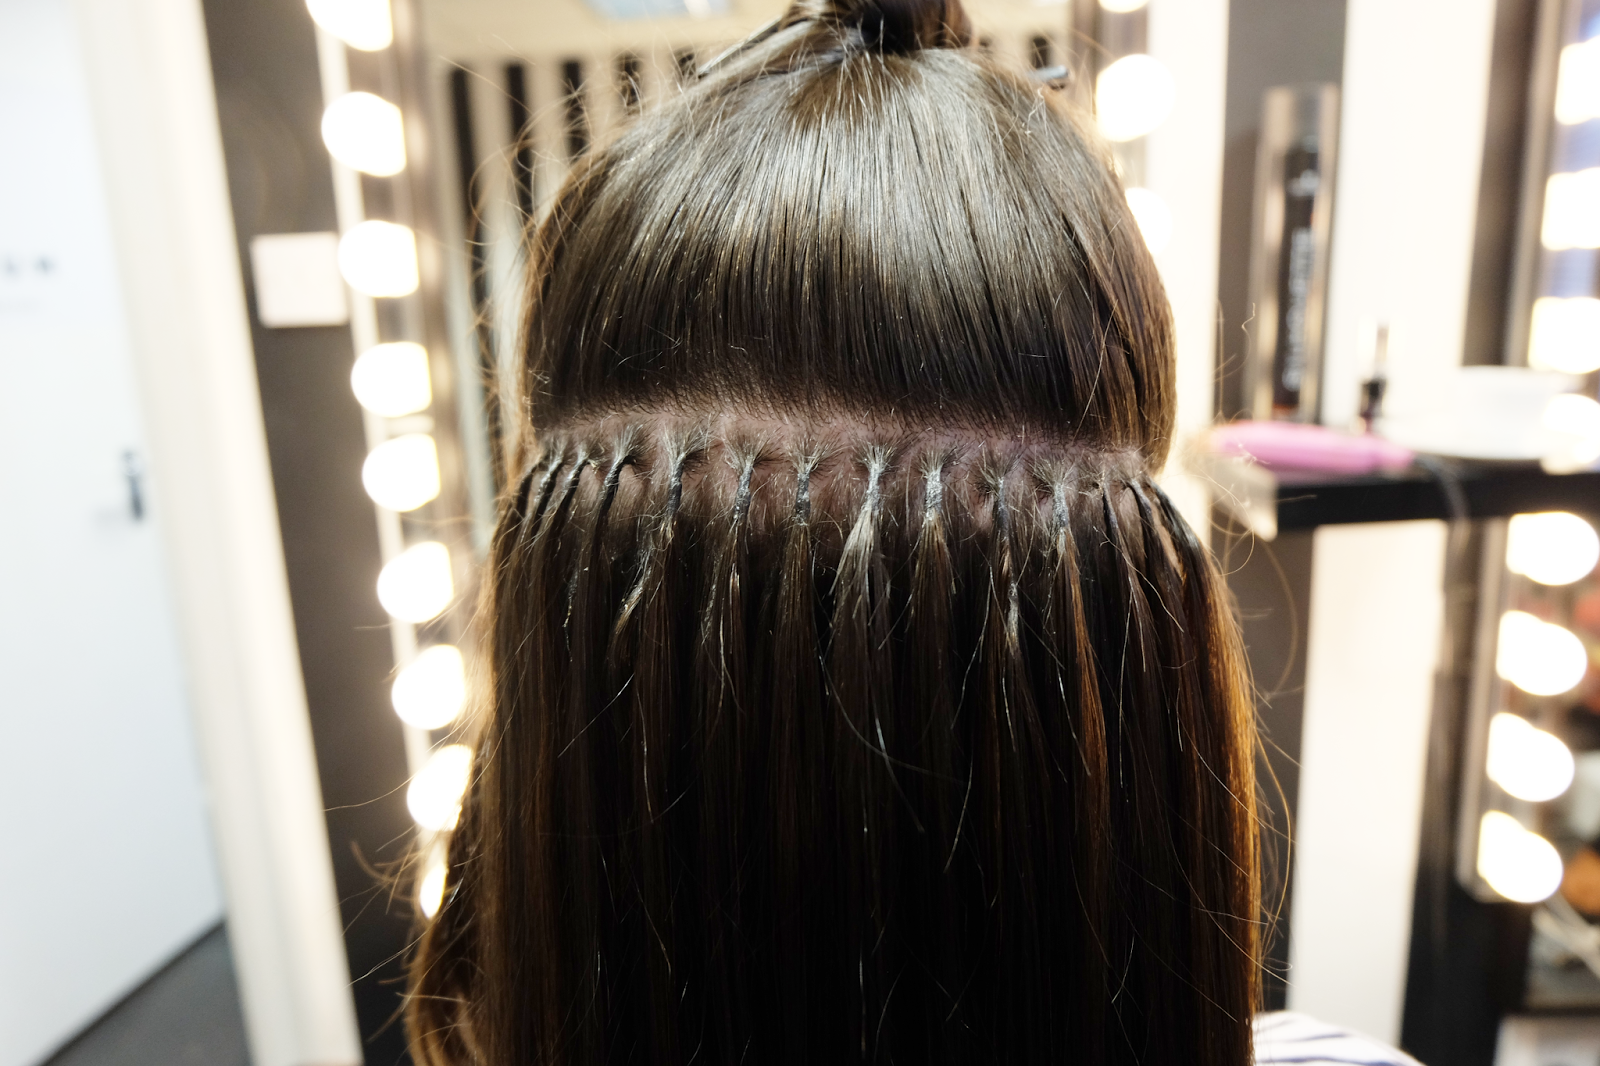 First set of hair extensions with platinum prestige penneys to the whole process was surprisingly fast and completely painless the bonds used to apply the hair extensions are also very small so they blend really well pmusecretfo Images